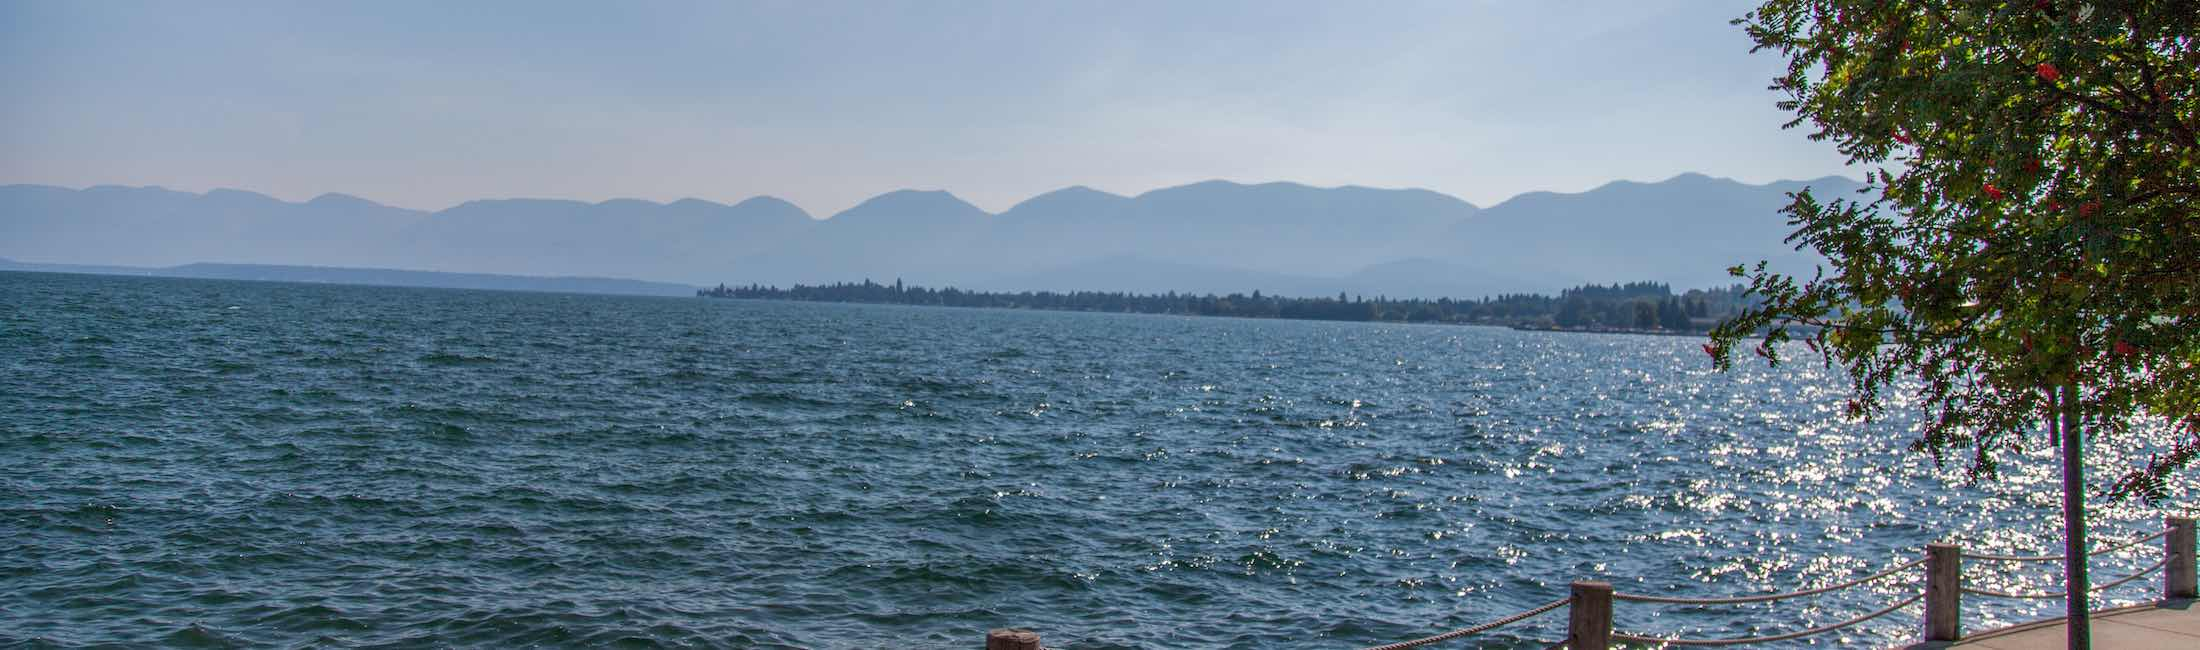 A Day Trip to Flathead Lake